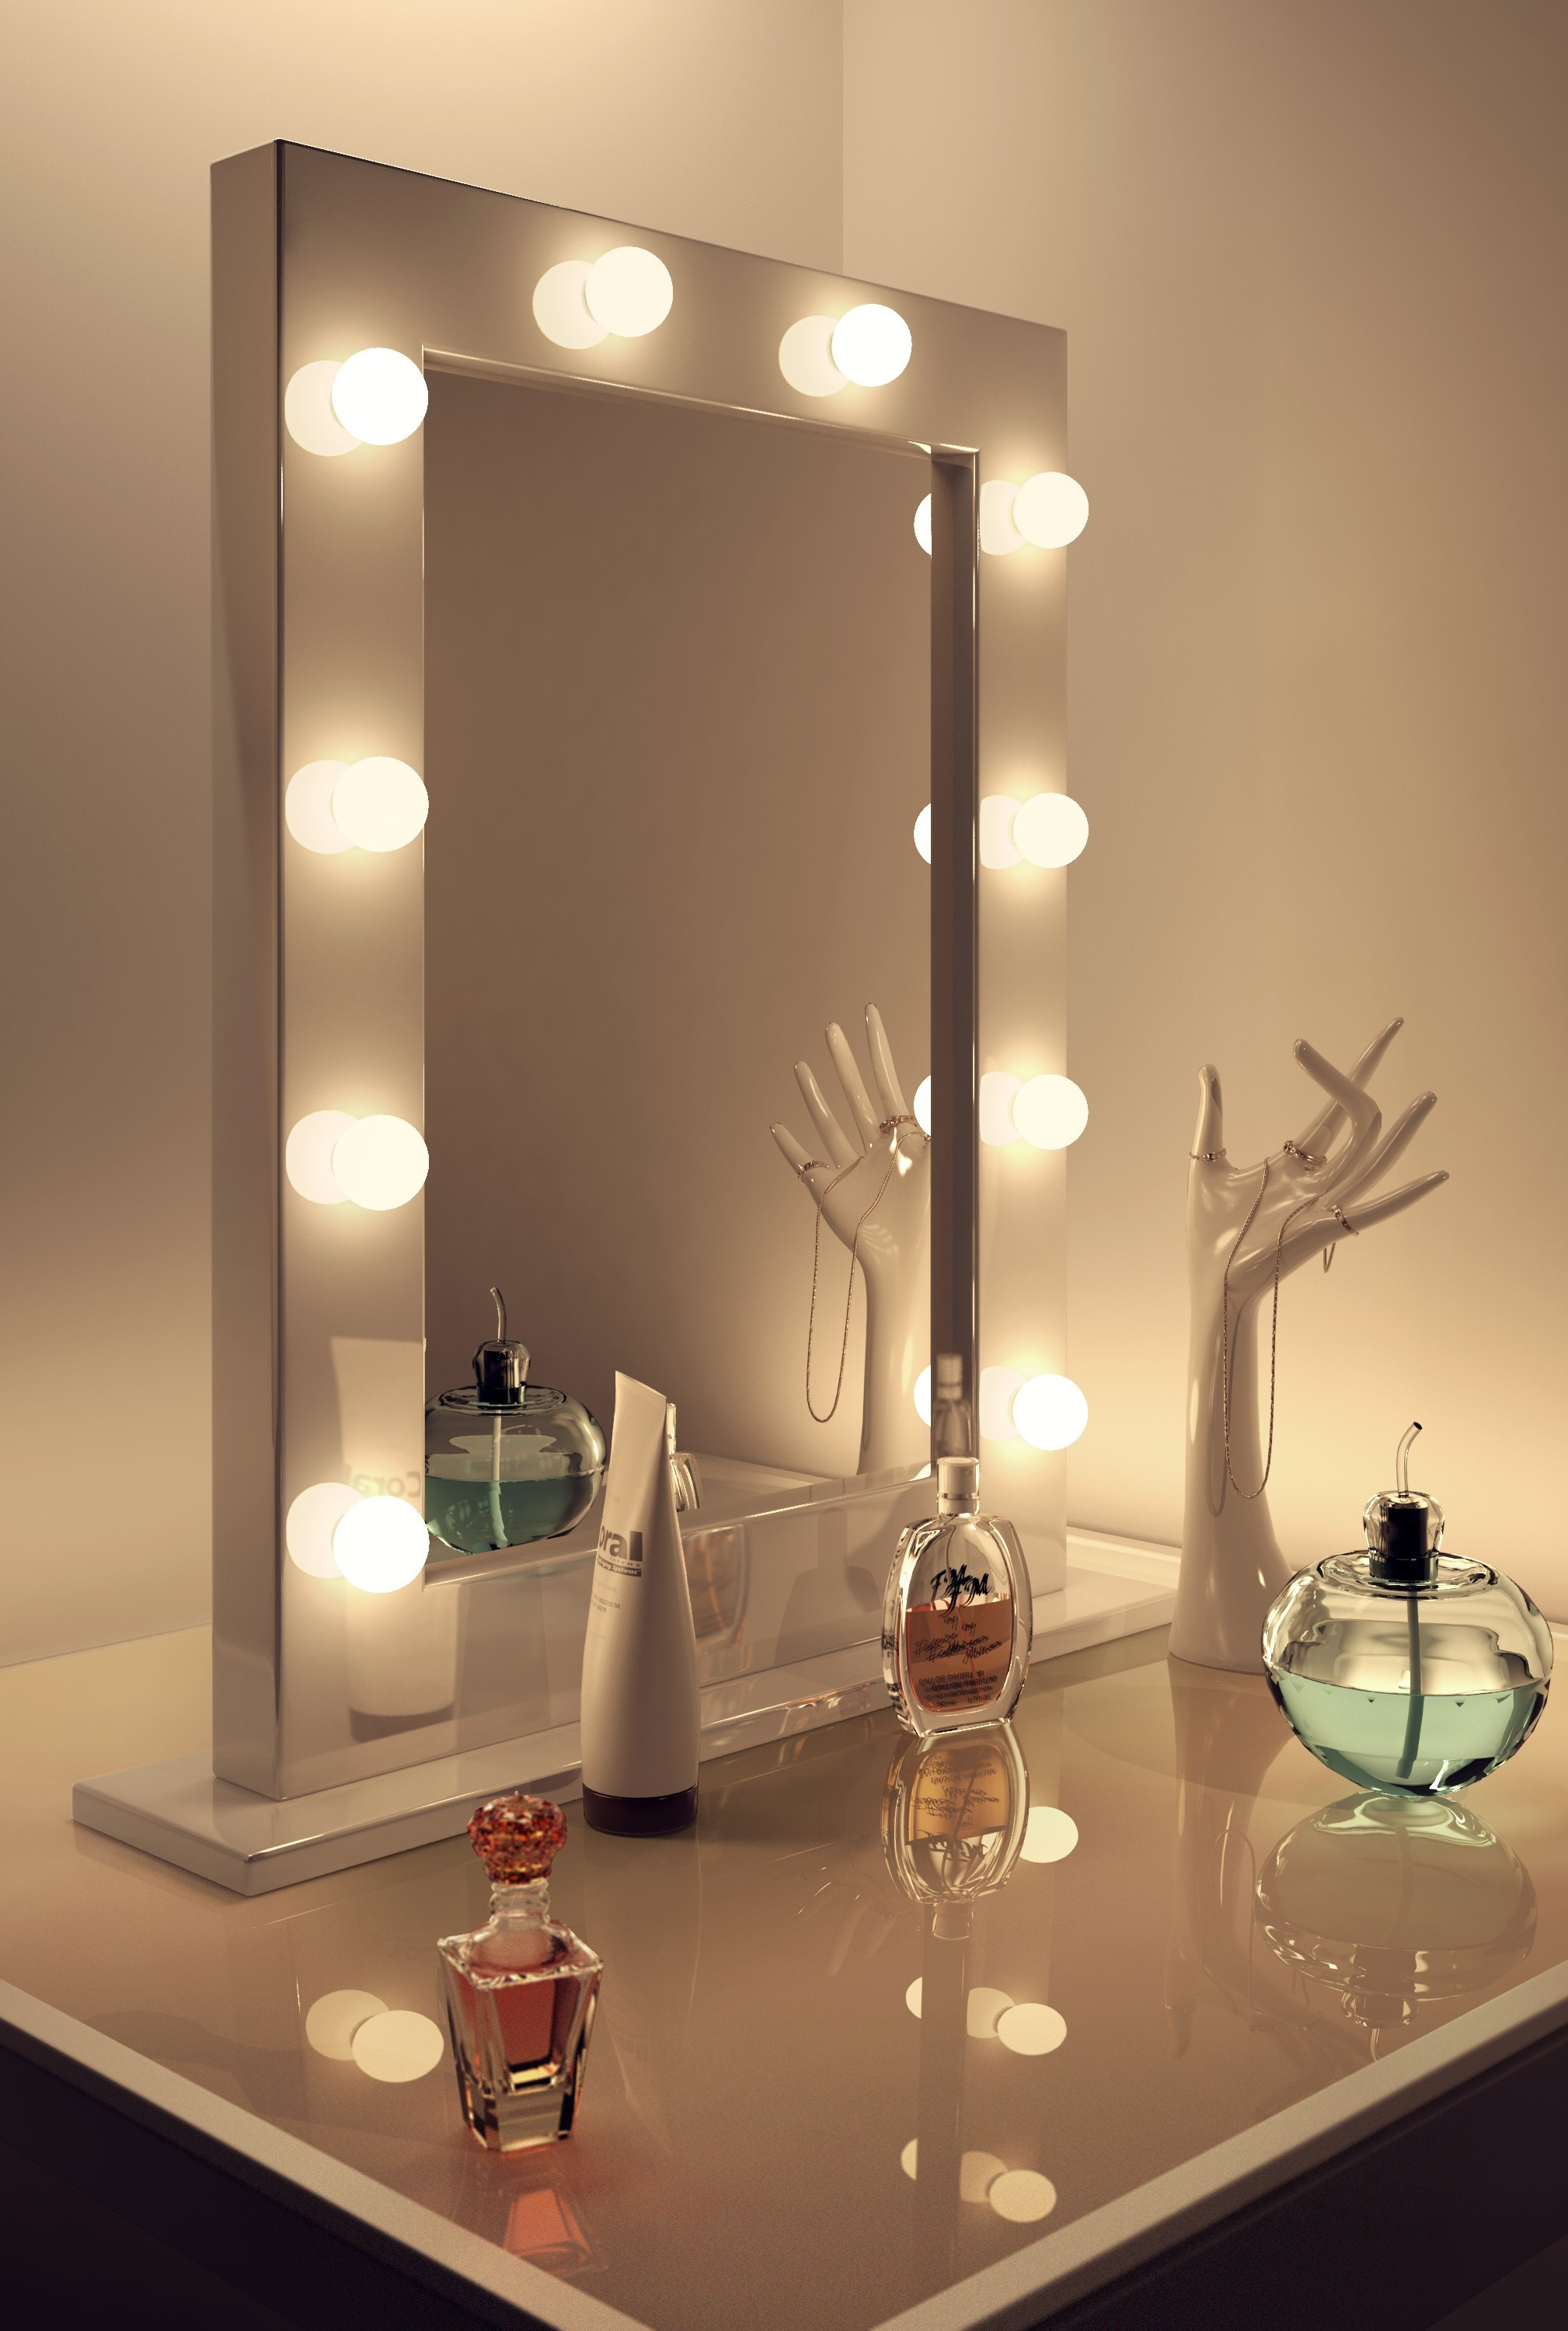 Wall Mirror With Lights vanity wall mirror with lights - a great way to light up your